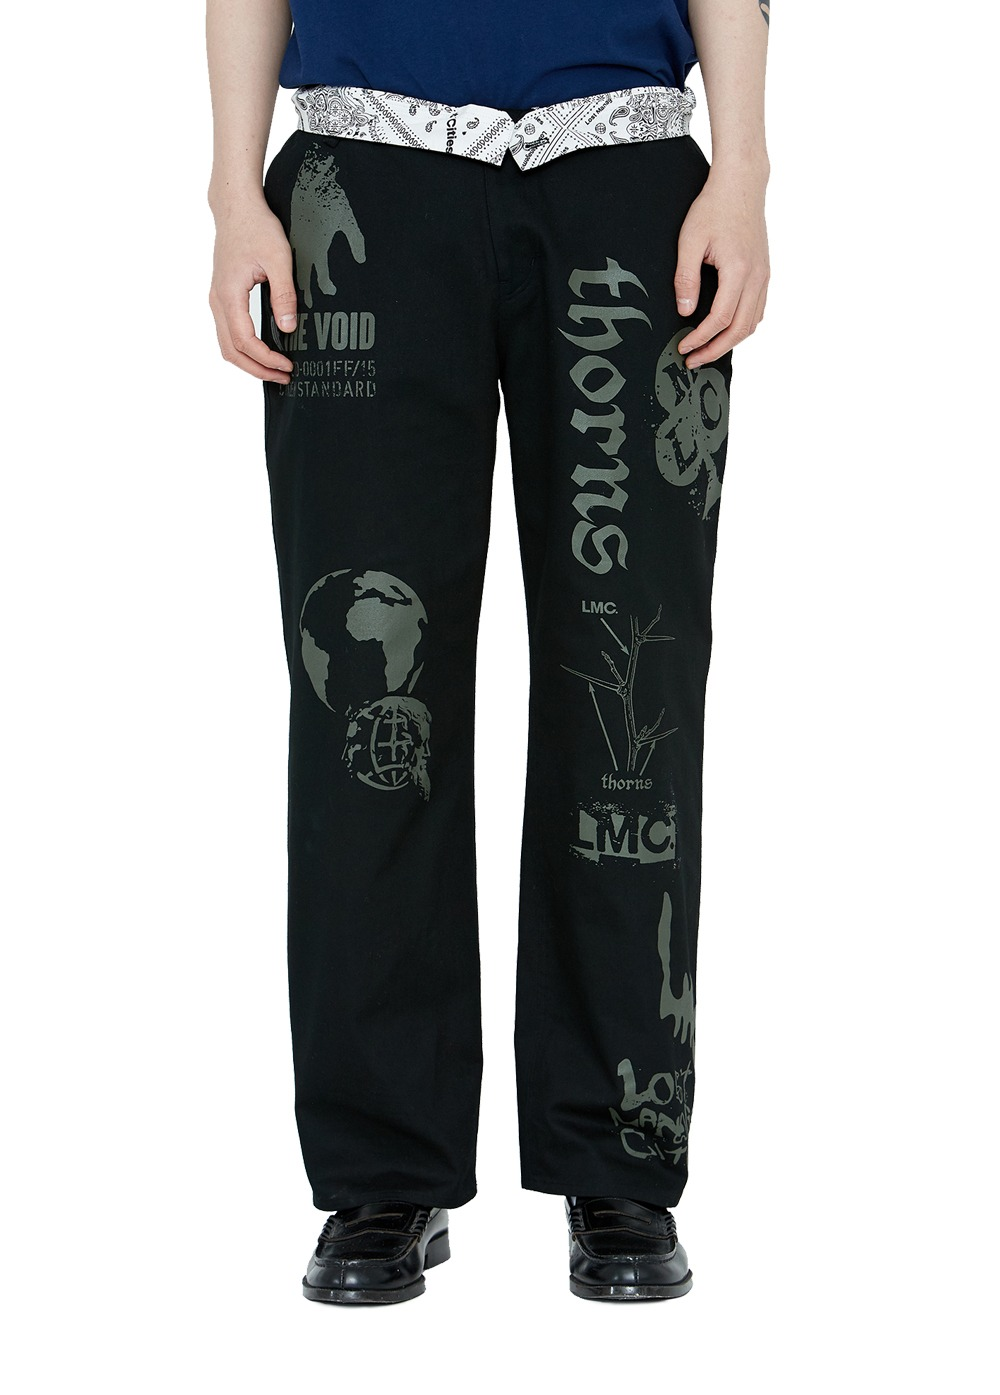 LMC GRAPHIC PRINTED DESCRIPTION WORK PANTS black